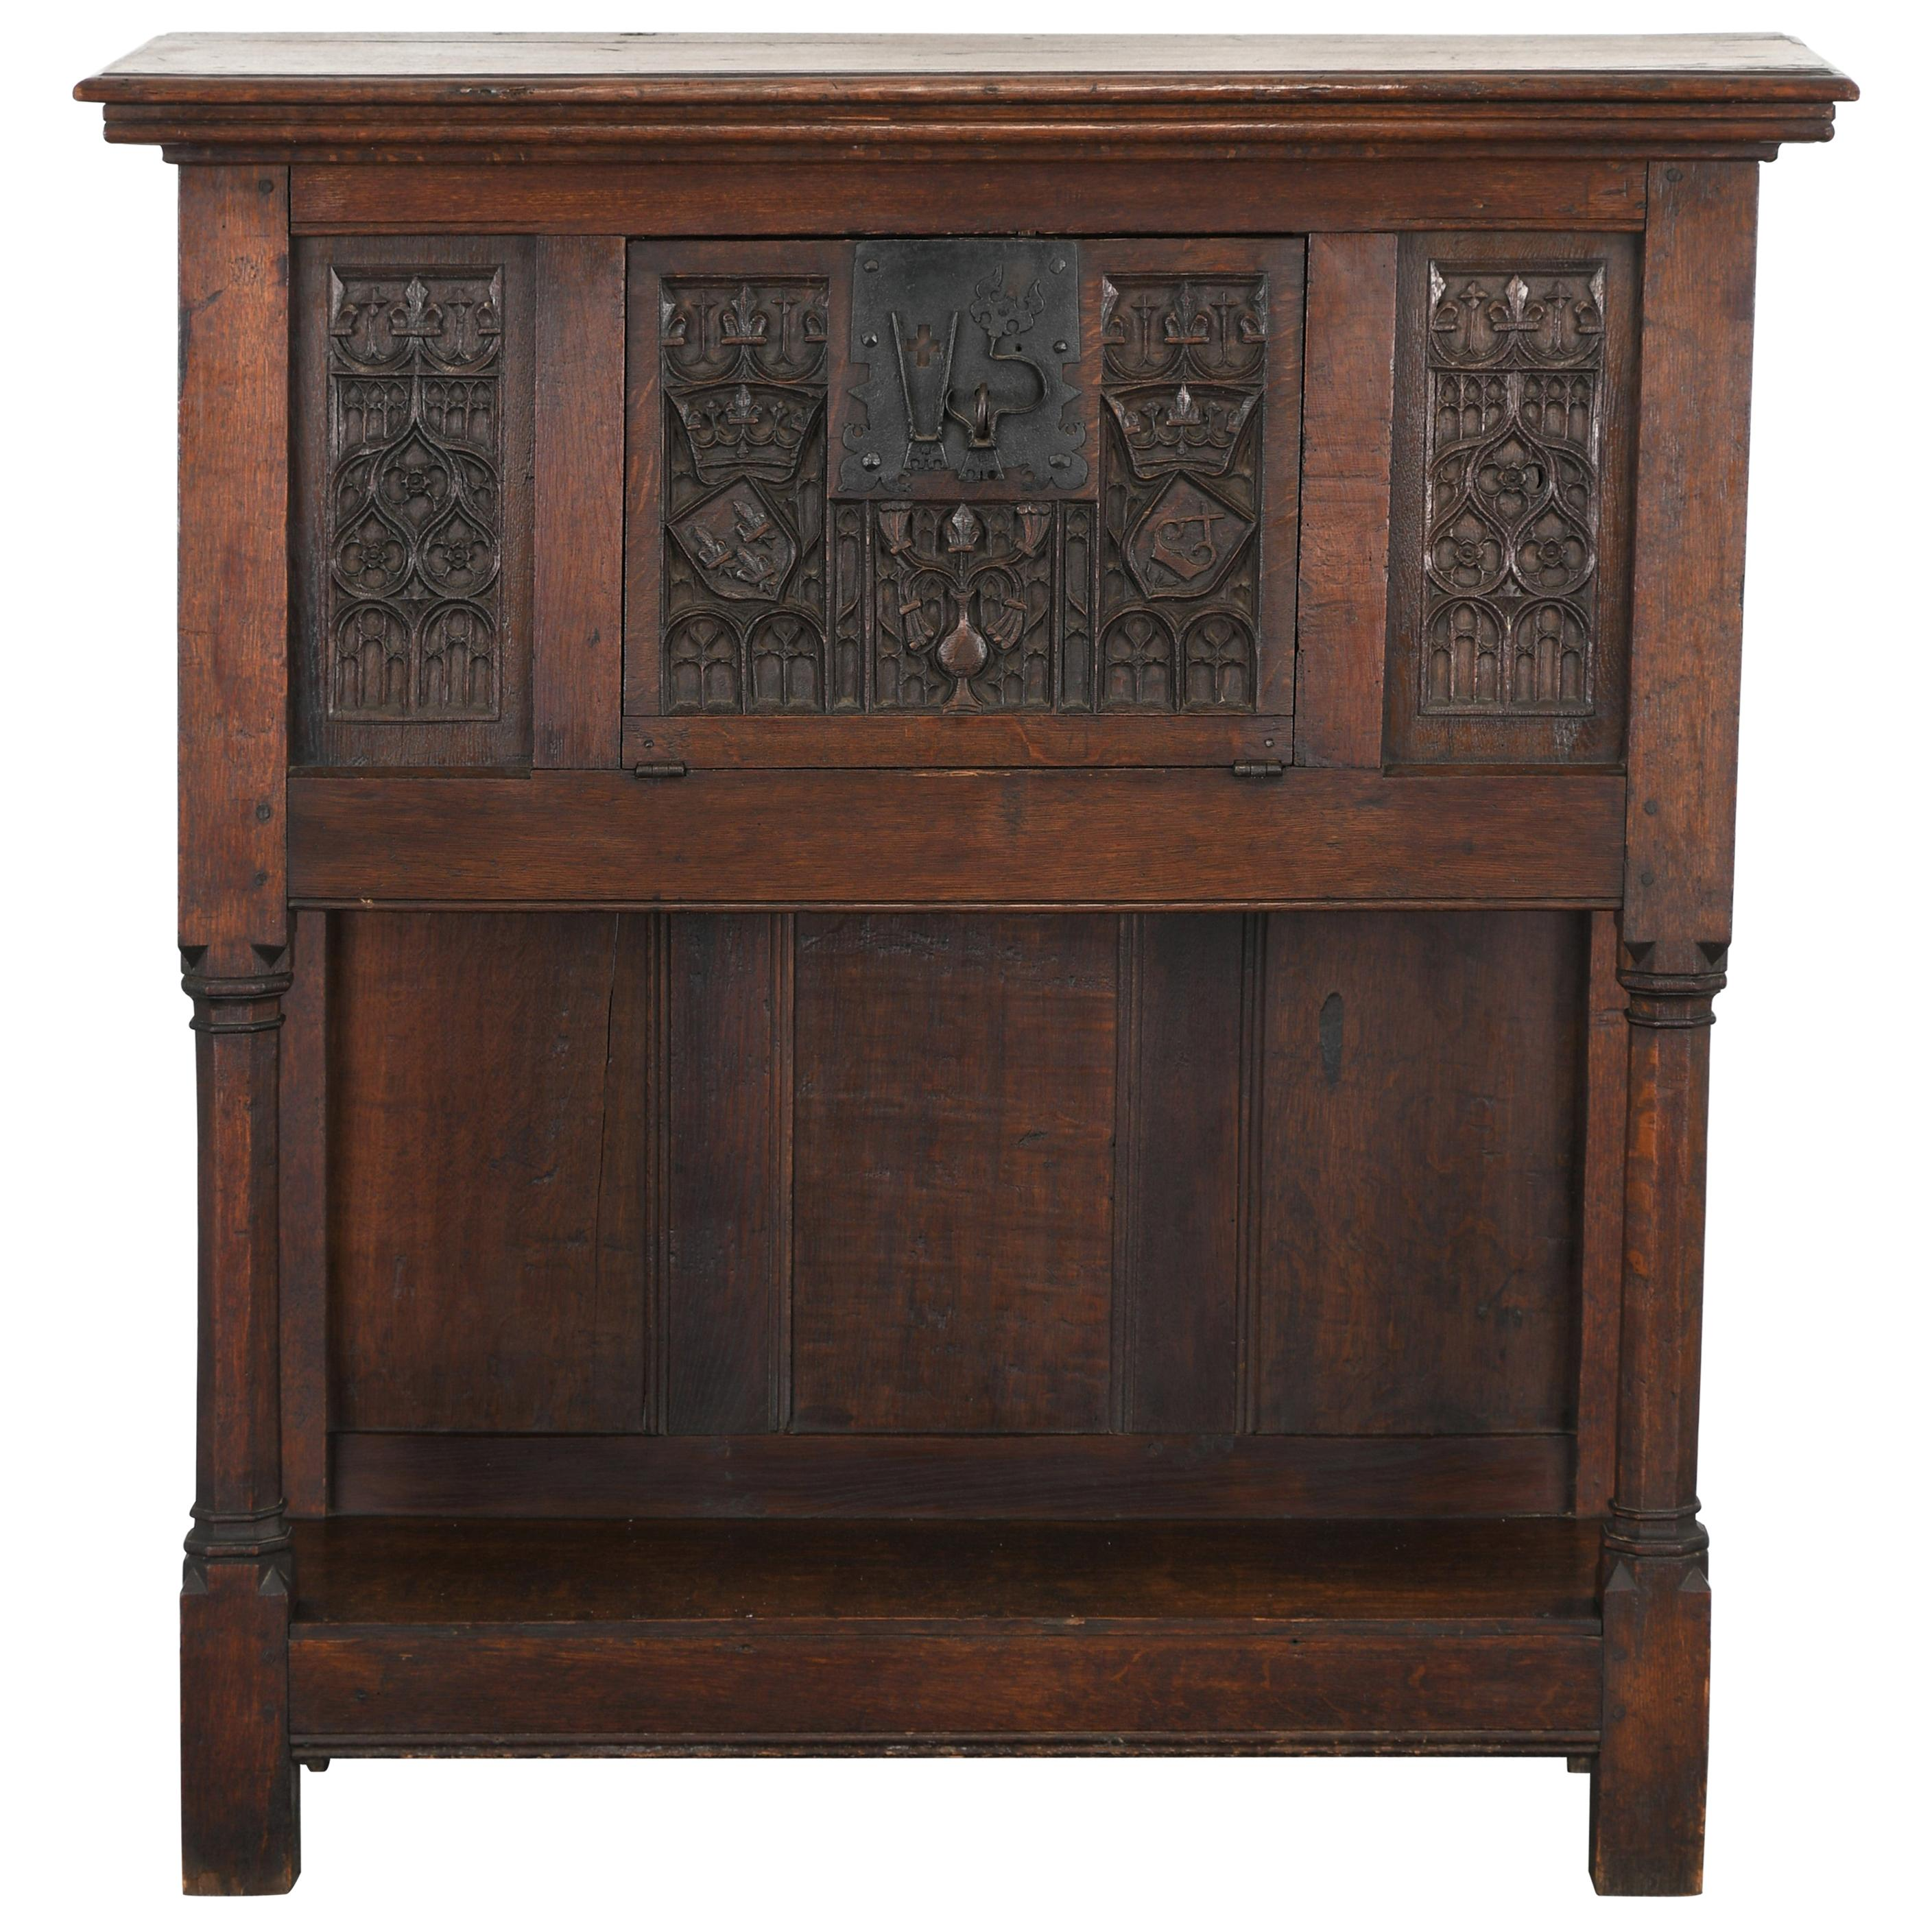 Gothic Oak Cabinet, Late 19th-20th Century